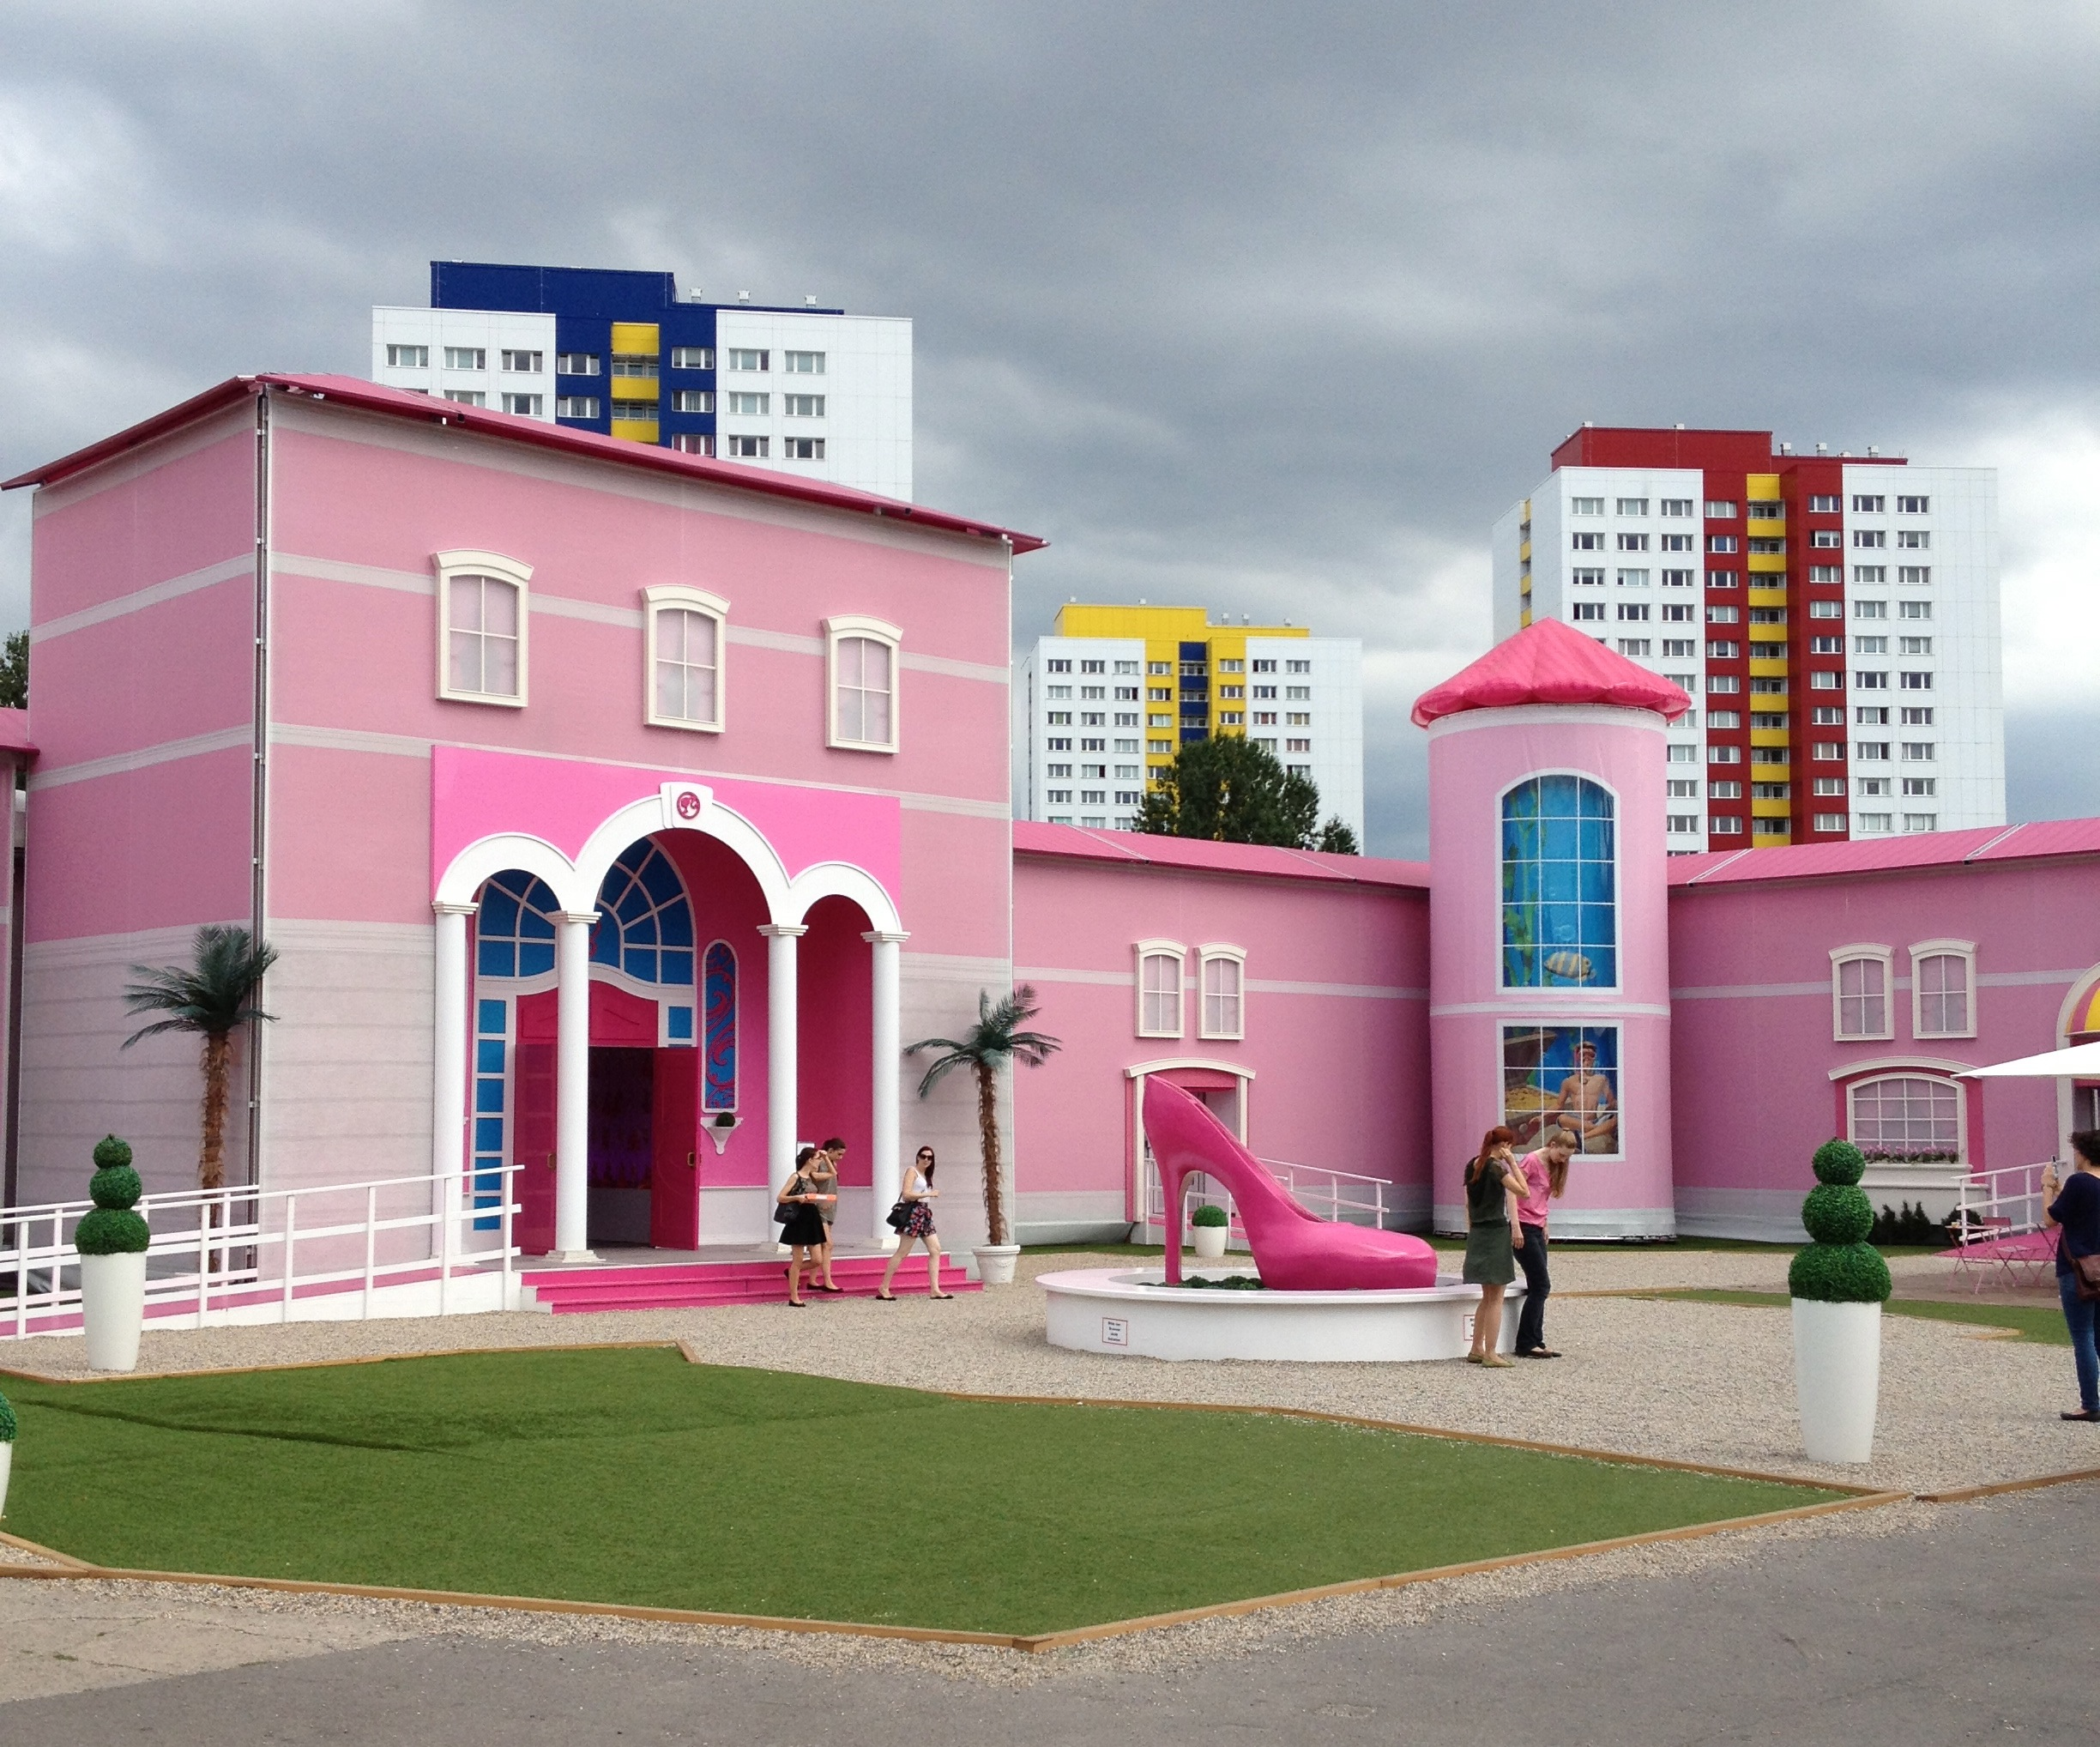 The Barbie Dreamhouse Has Been Installed In Berlin, Amid Protests And  Plattenbau. (Photo